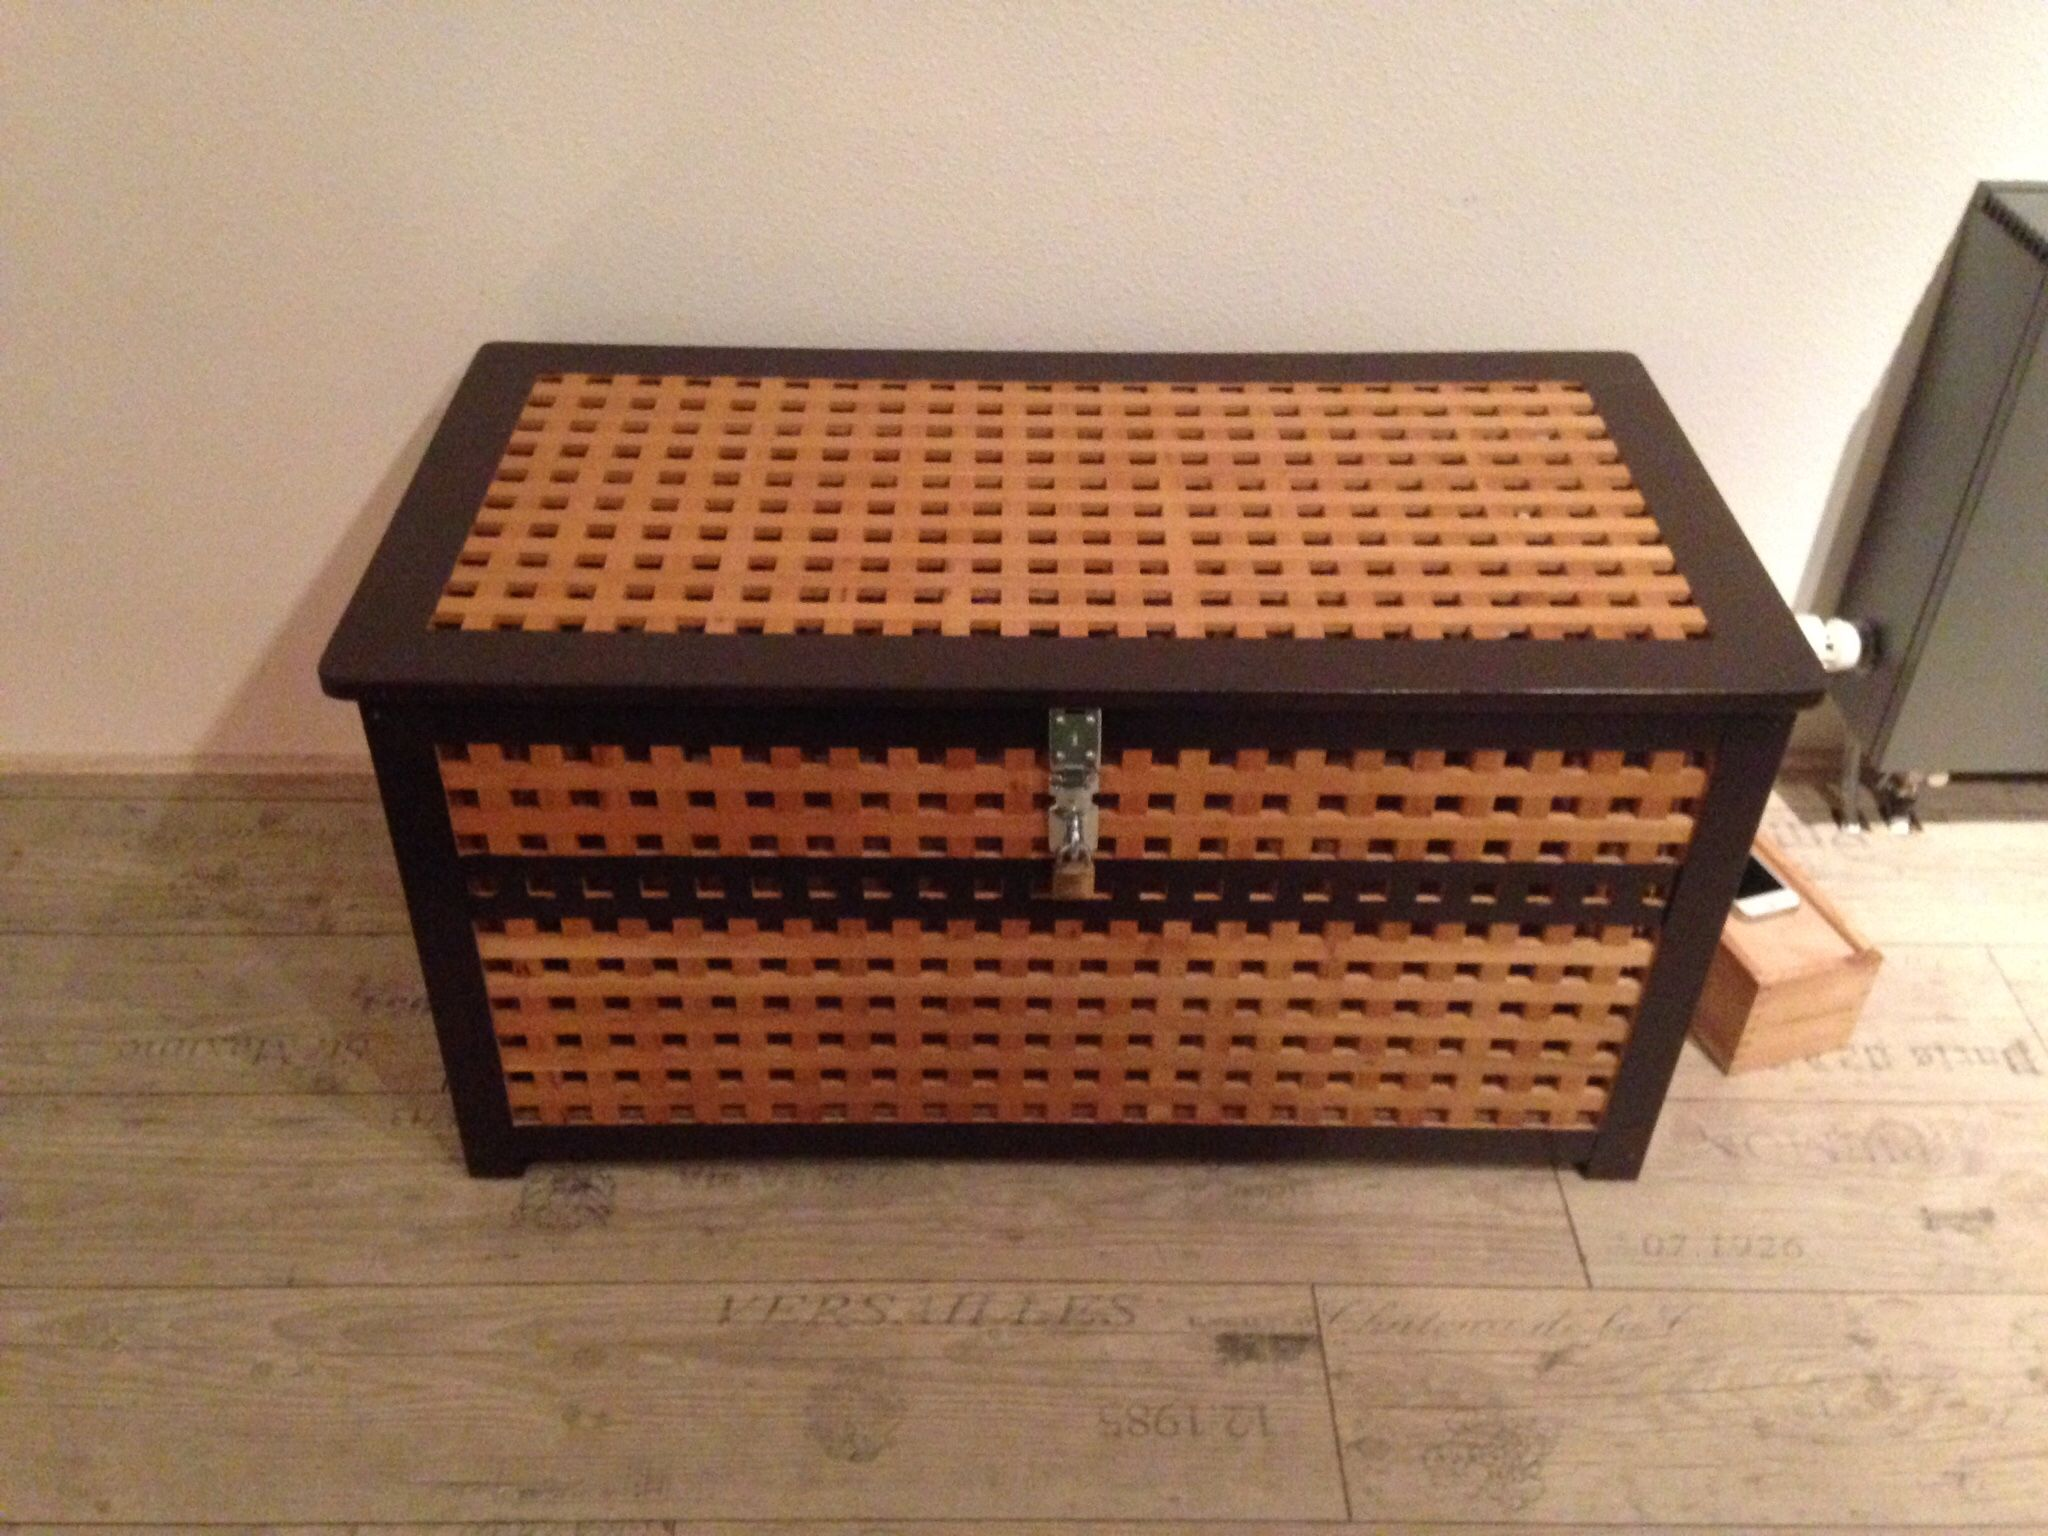 create your own minecraft chest (dubble) is simple. you buy at